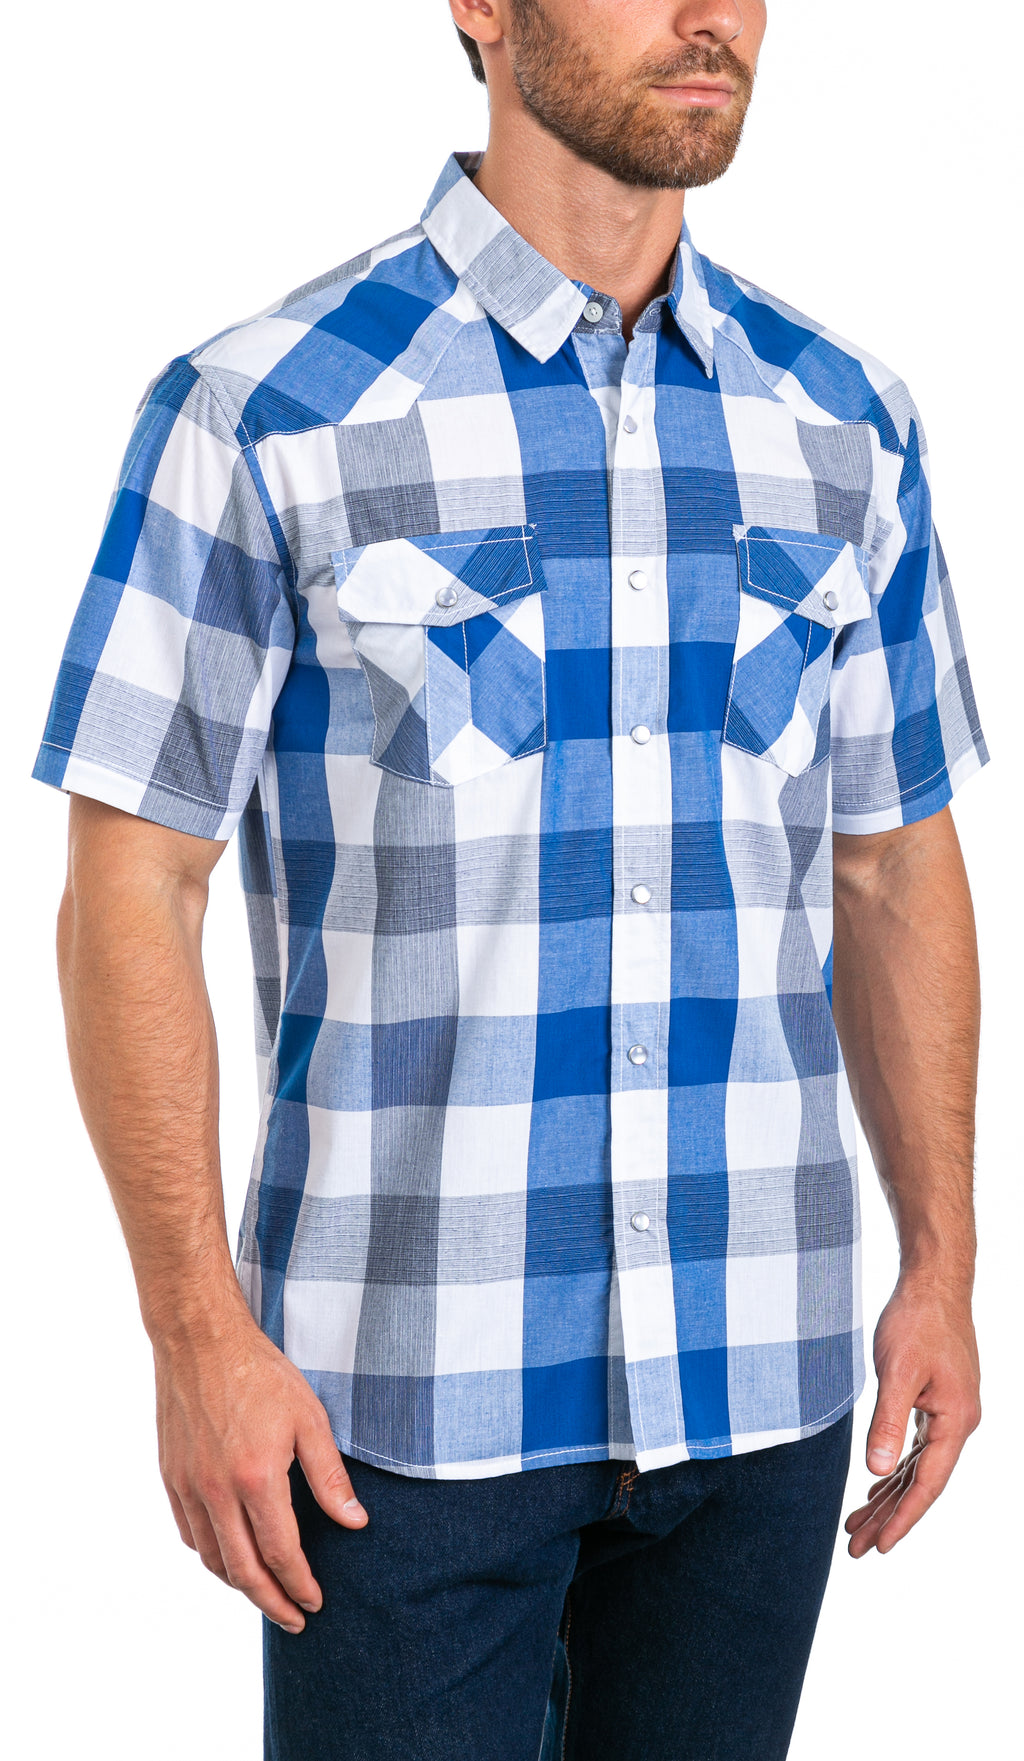 Sterling Men's Short Sleeve Snap Button Shirt